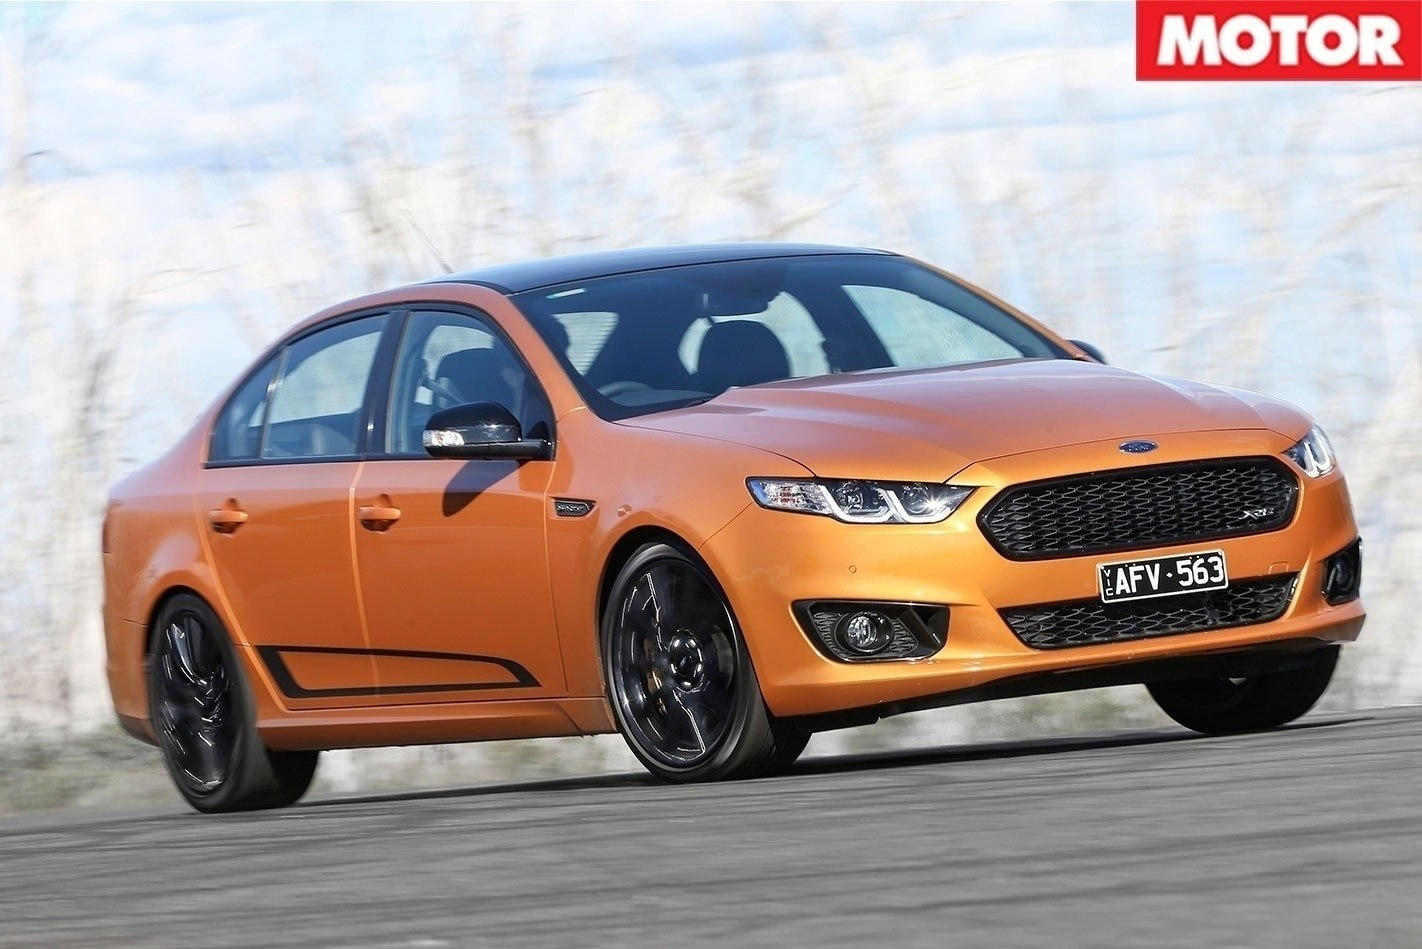 18 A 2019 Ford Falcon Xr8 Gt Concept and Review